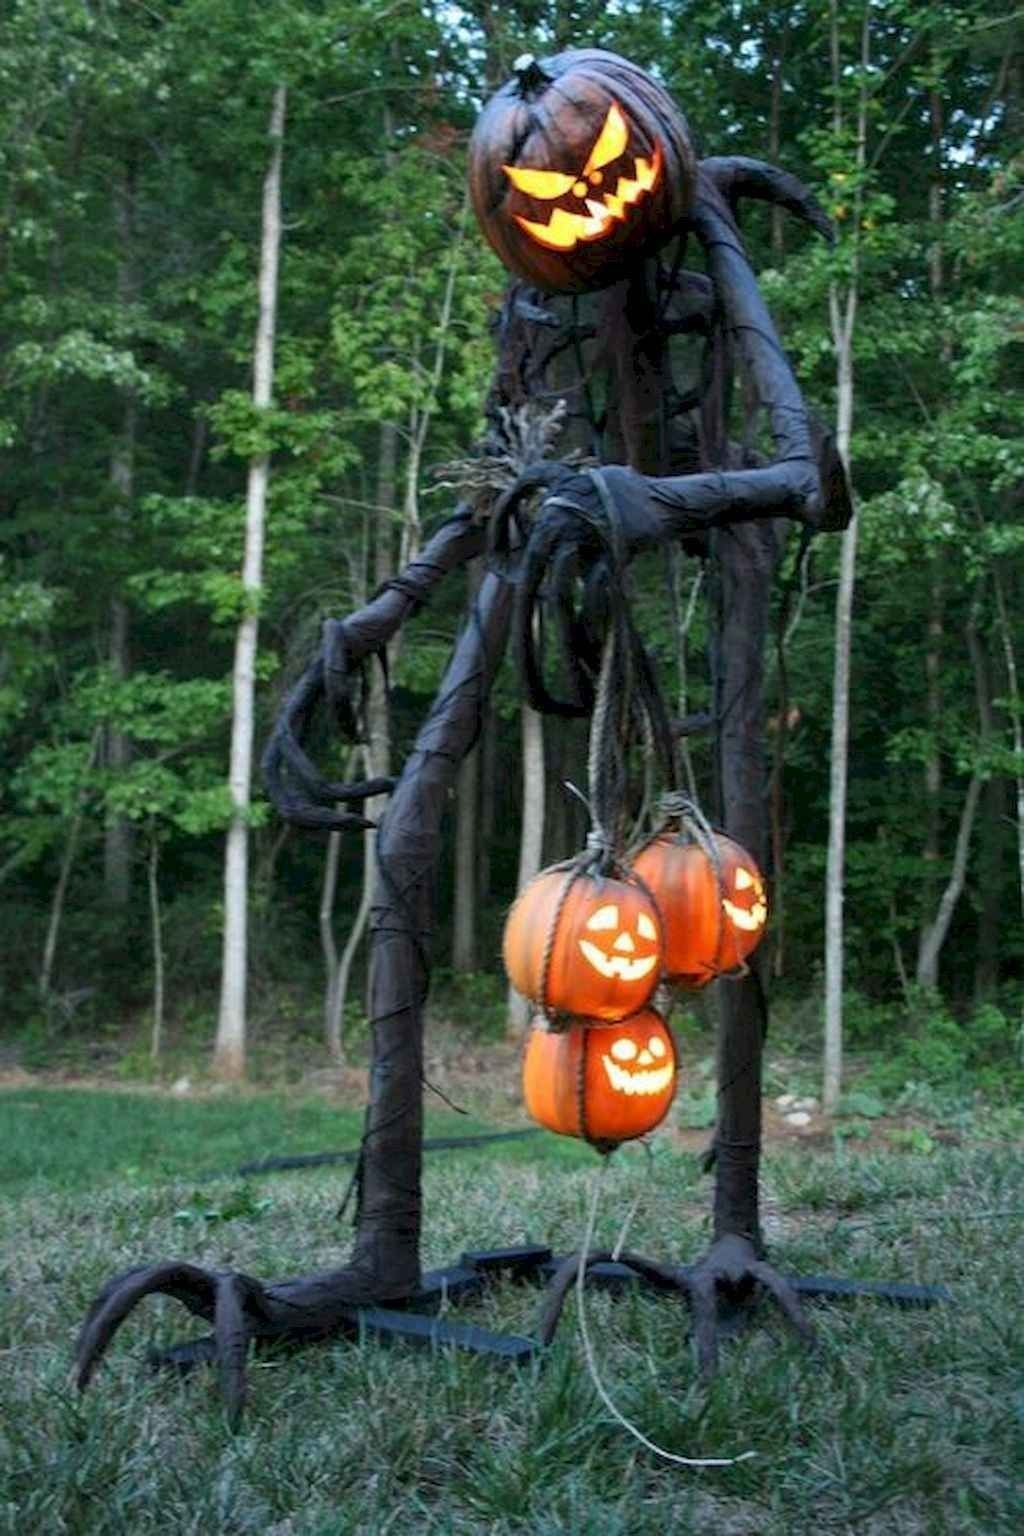 20+ Amazing Outdoor Halloween Decorations Ideas For This Year #halloweendecorations